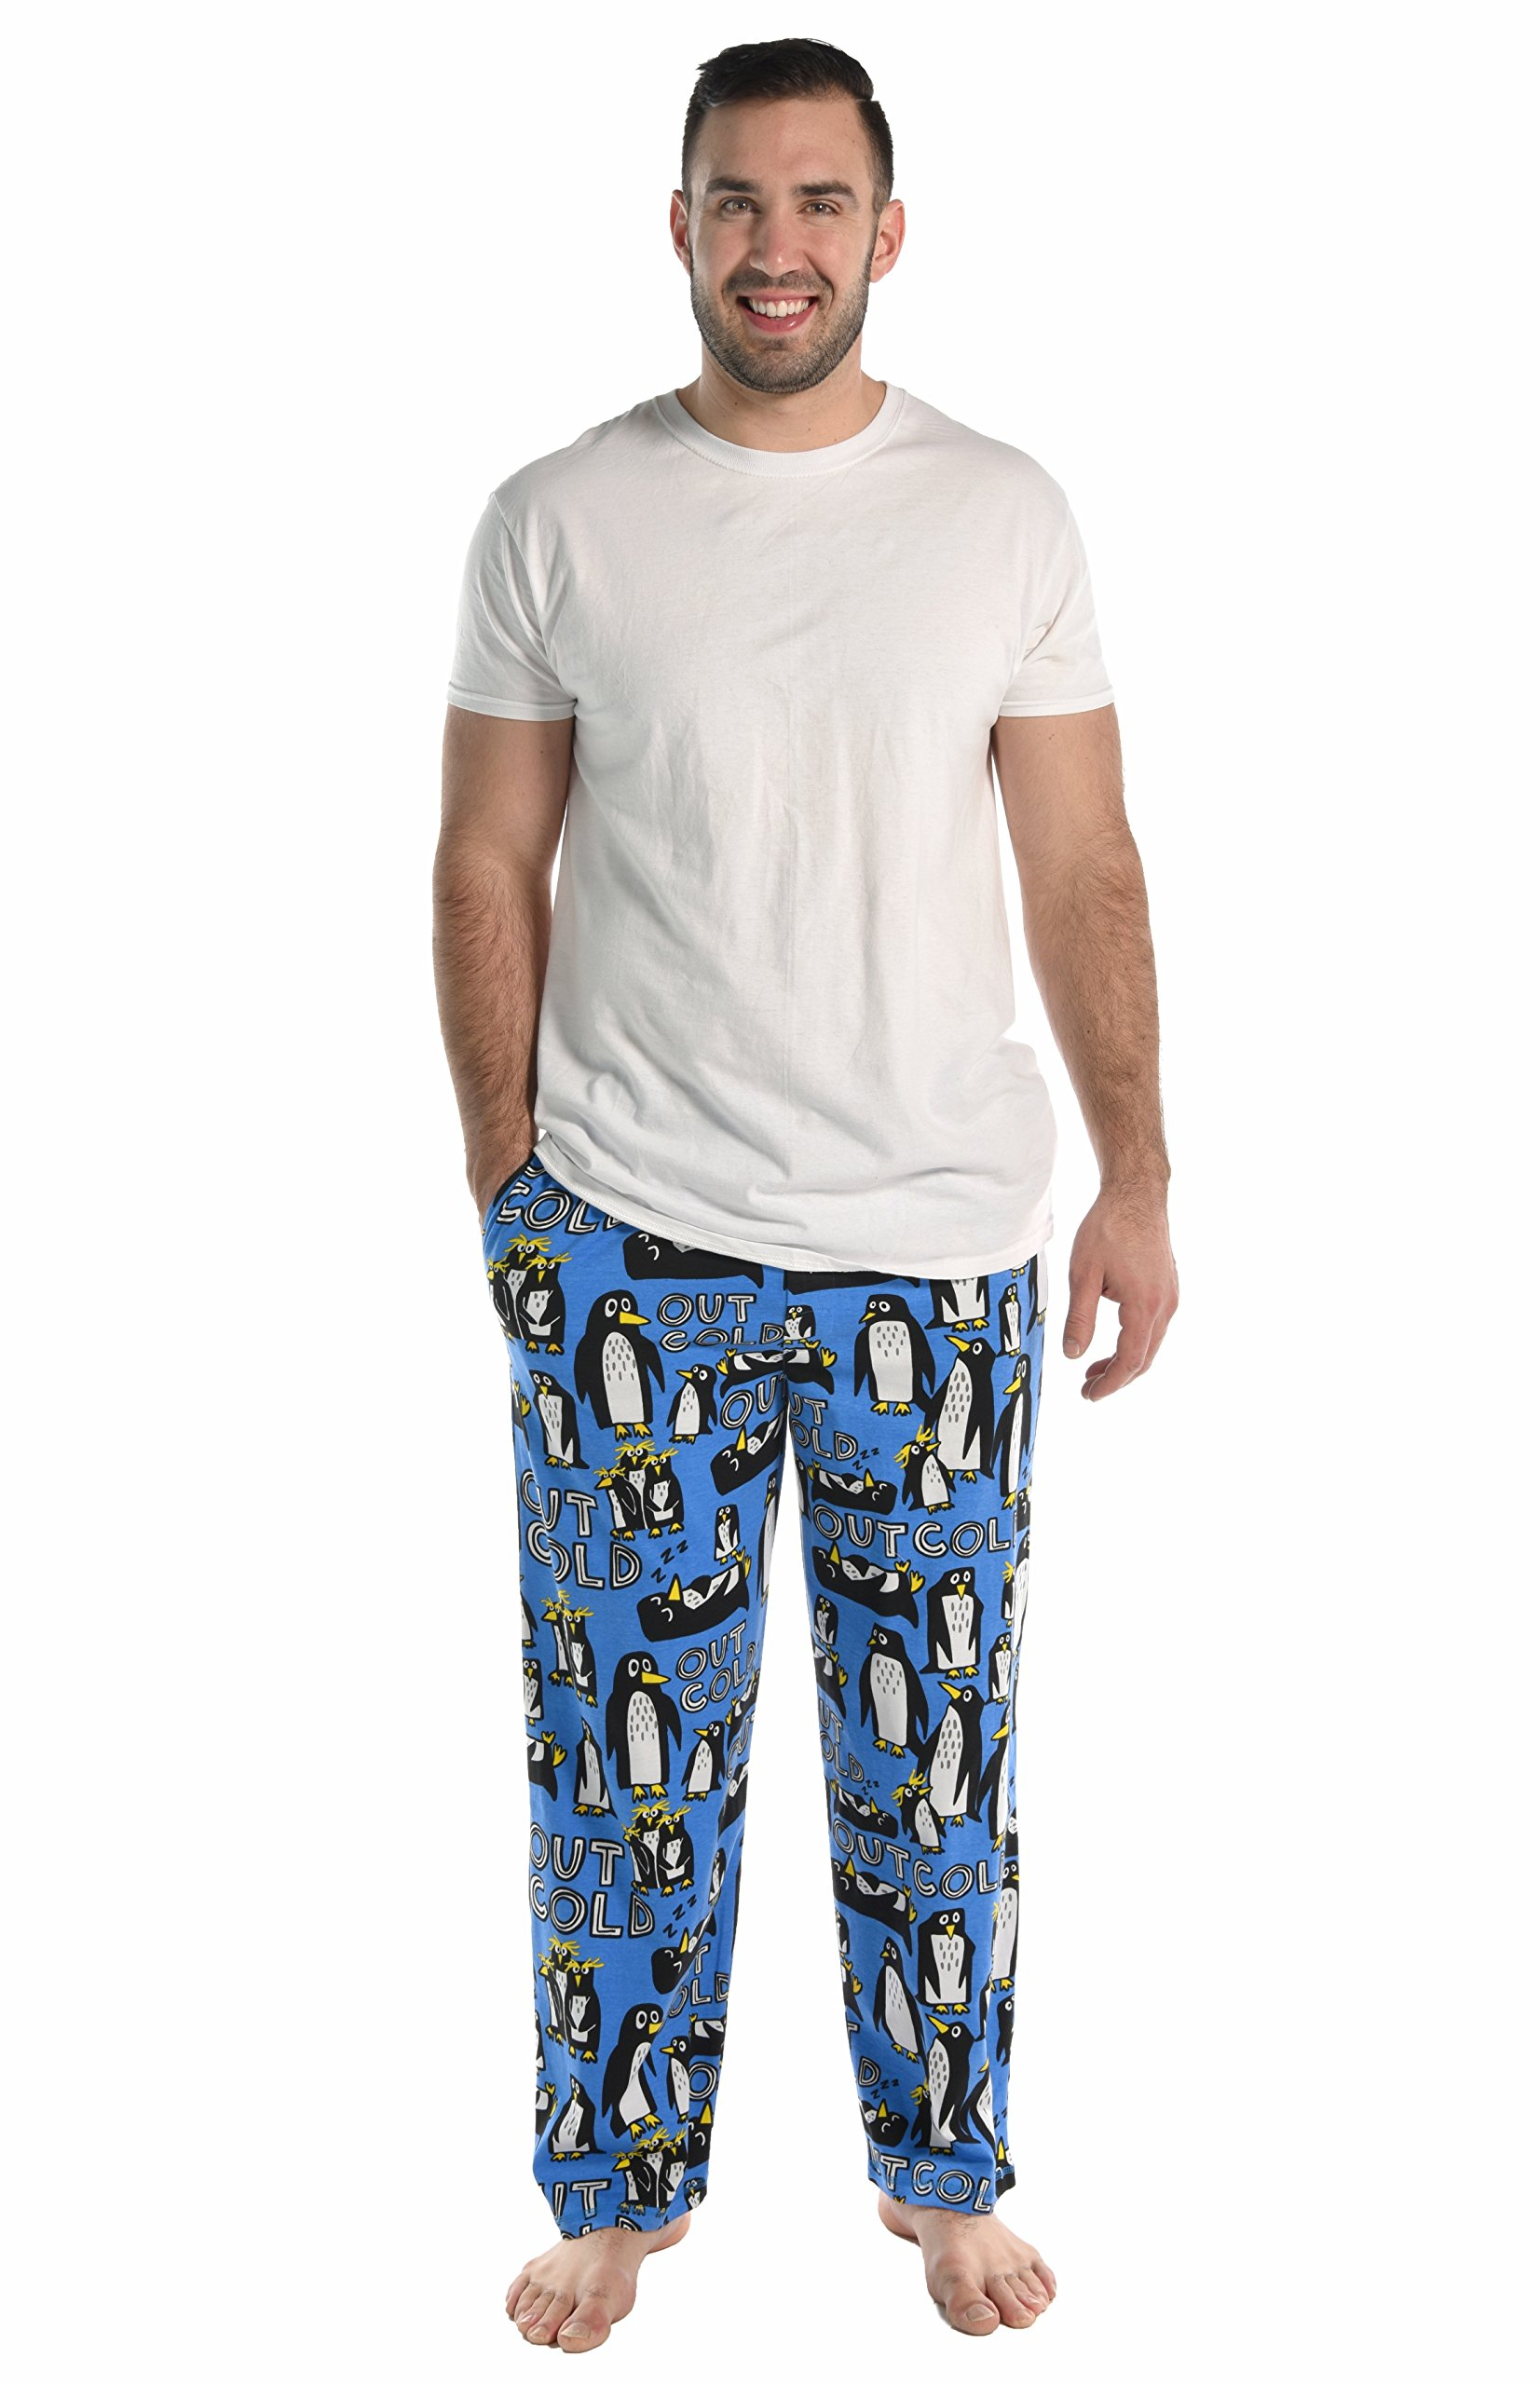 Out Cold Men's Pajama Pants Bottom by LazyOne | Pajama Bottom for Men (Large) by Lazy One (Image #3)